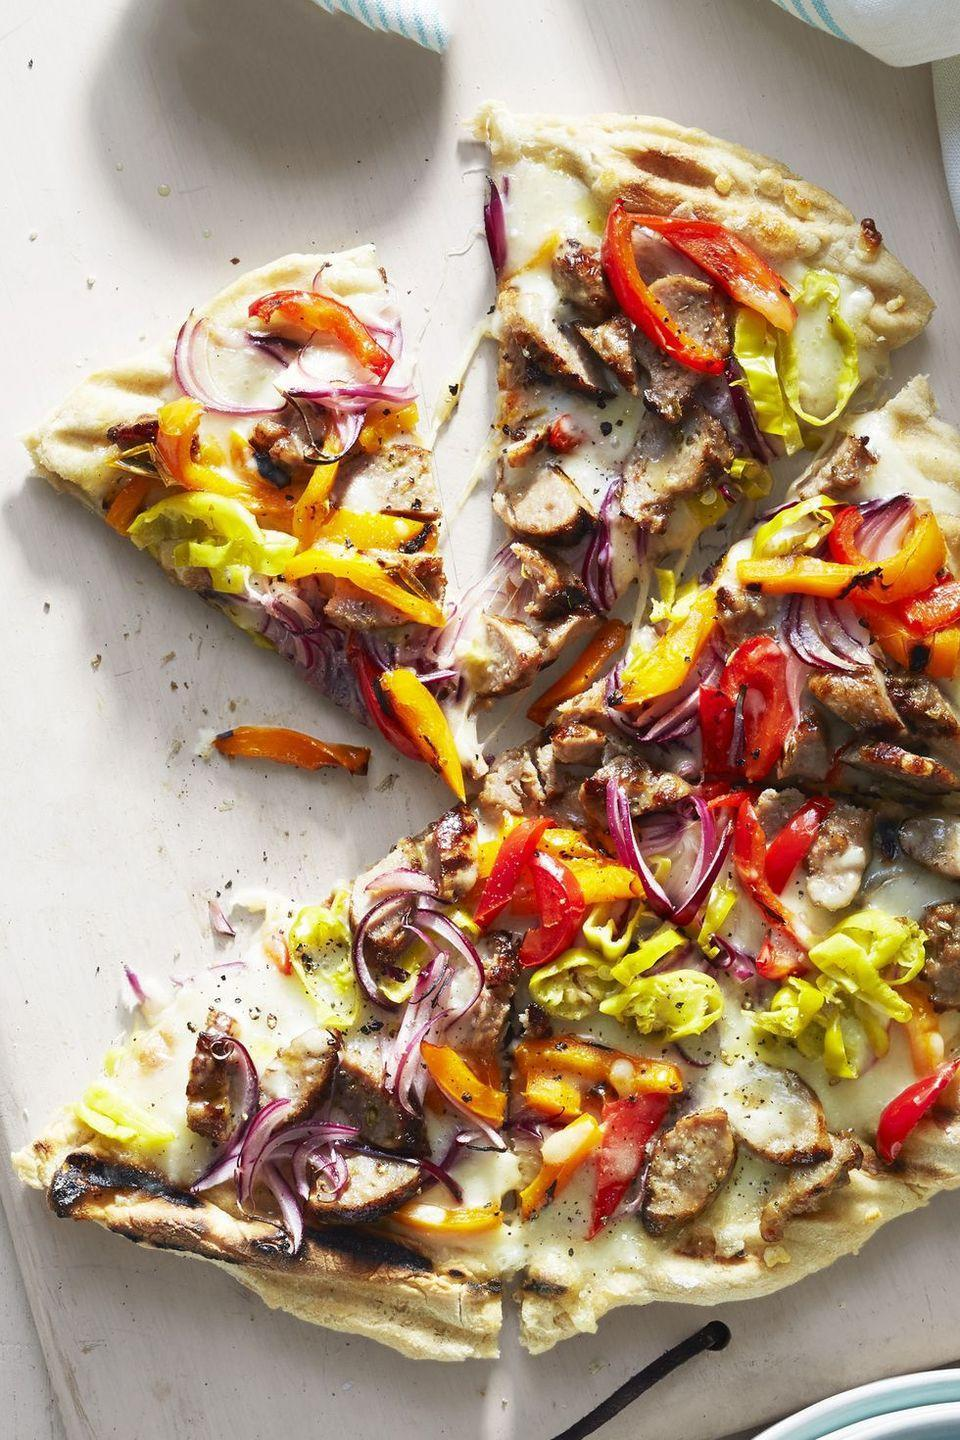 """<p>Use frozen pizza dough to easy make a savory and sharable app for pizza lovers.</p><p><a href=""""https://www.goodhousekeeping.com/food-recipes/easy/a45190/bbq-italian-sausage-pepper-pie-recipe/"""" rel=""""nofollow noopener"""" target=""""_blank"""" data-ylk=""""slk:Get the recipe for BBQ Italian Sausage and Pepper Pie»"""" class=""""link rapid-noclick-resp""""><em>Get the recipe for BBQ Italian Sausage and Pepper Pie»</em></a></p>"""